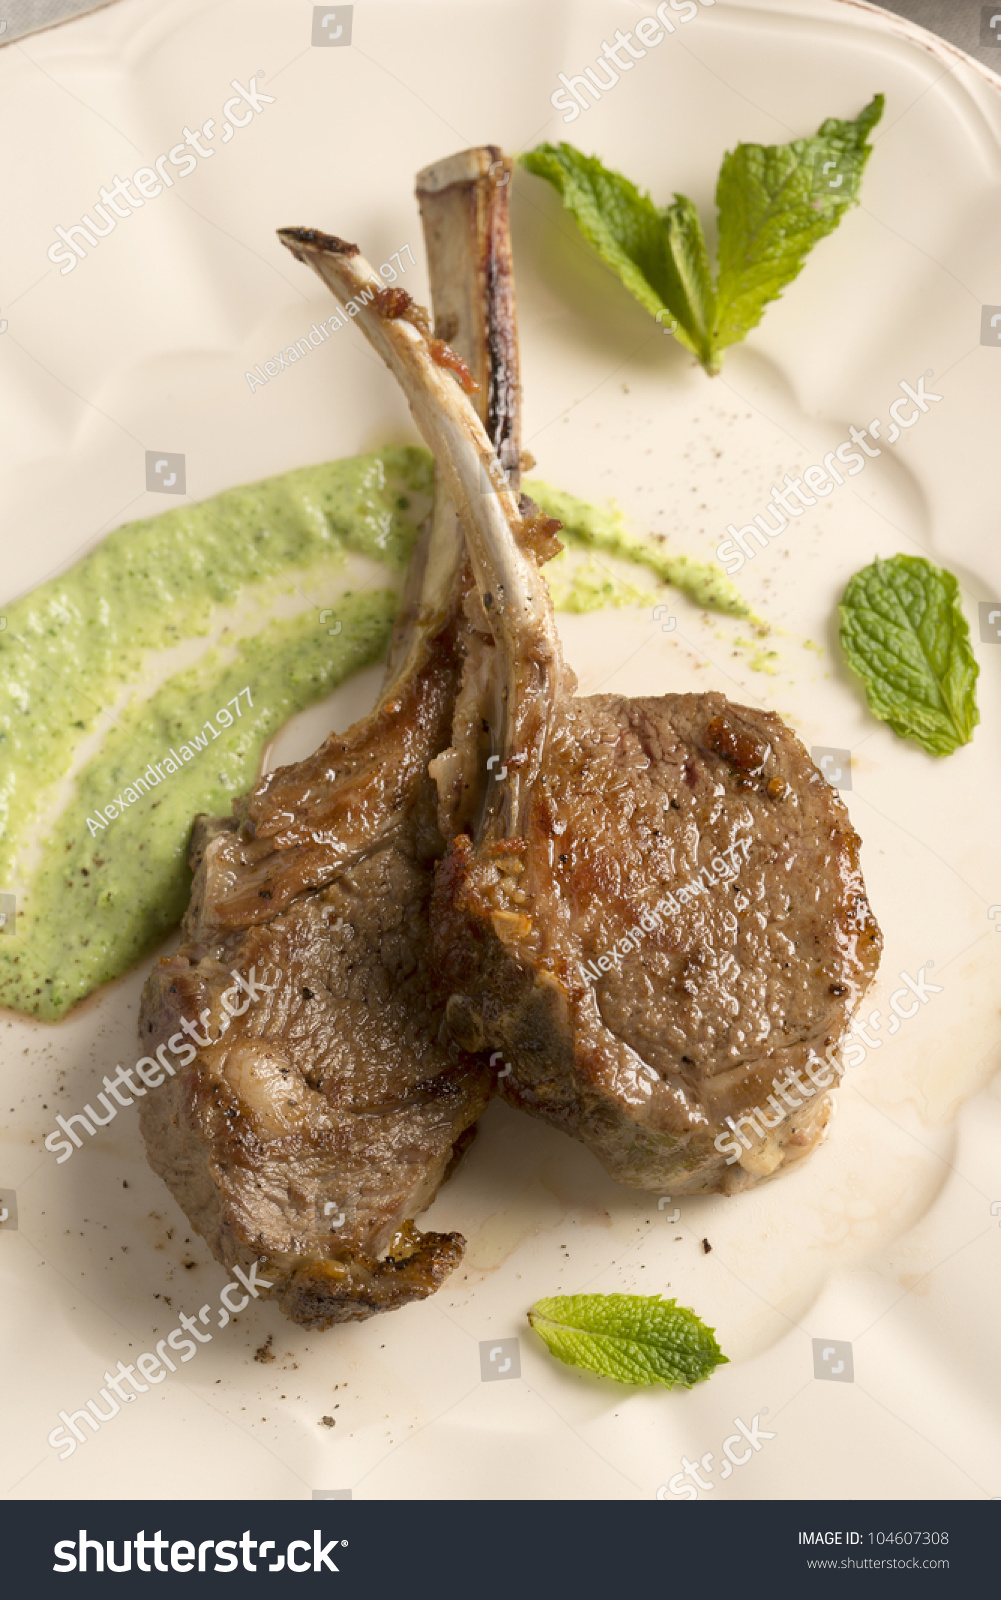 Lamb Chops With A Minted Pea Puree Stock Photo 104607308 ...